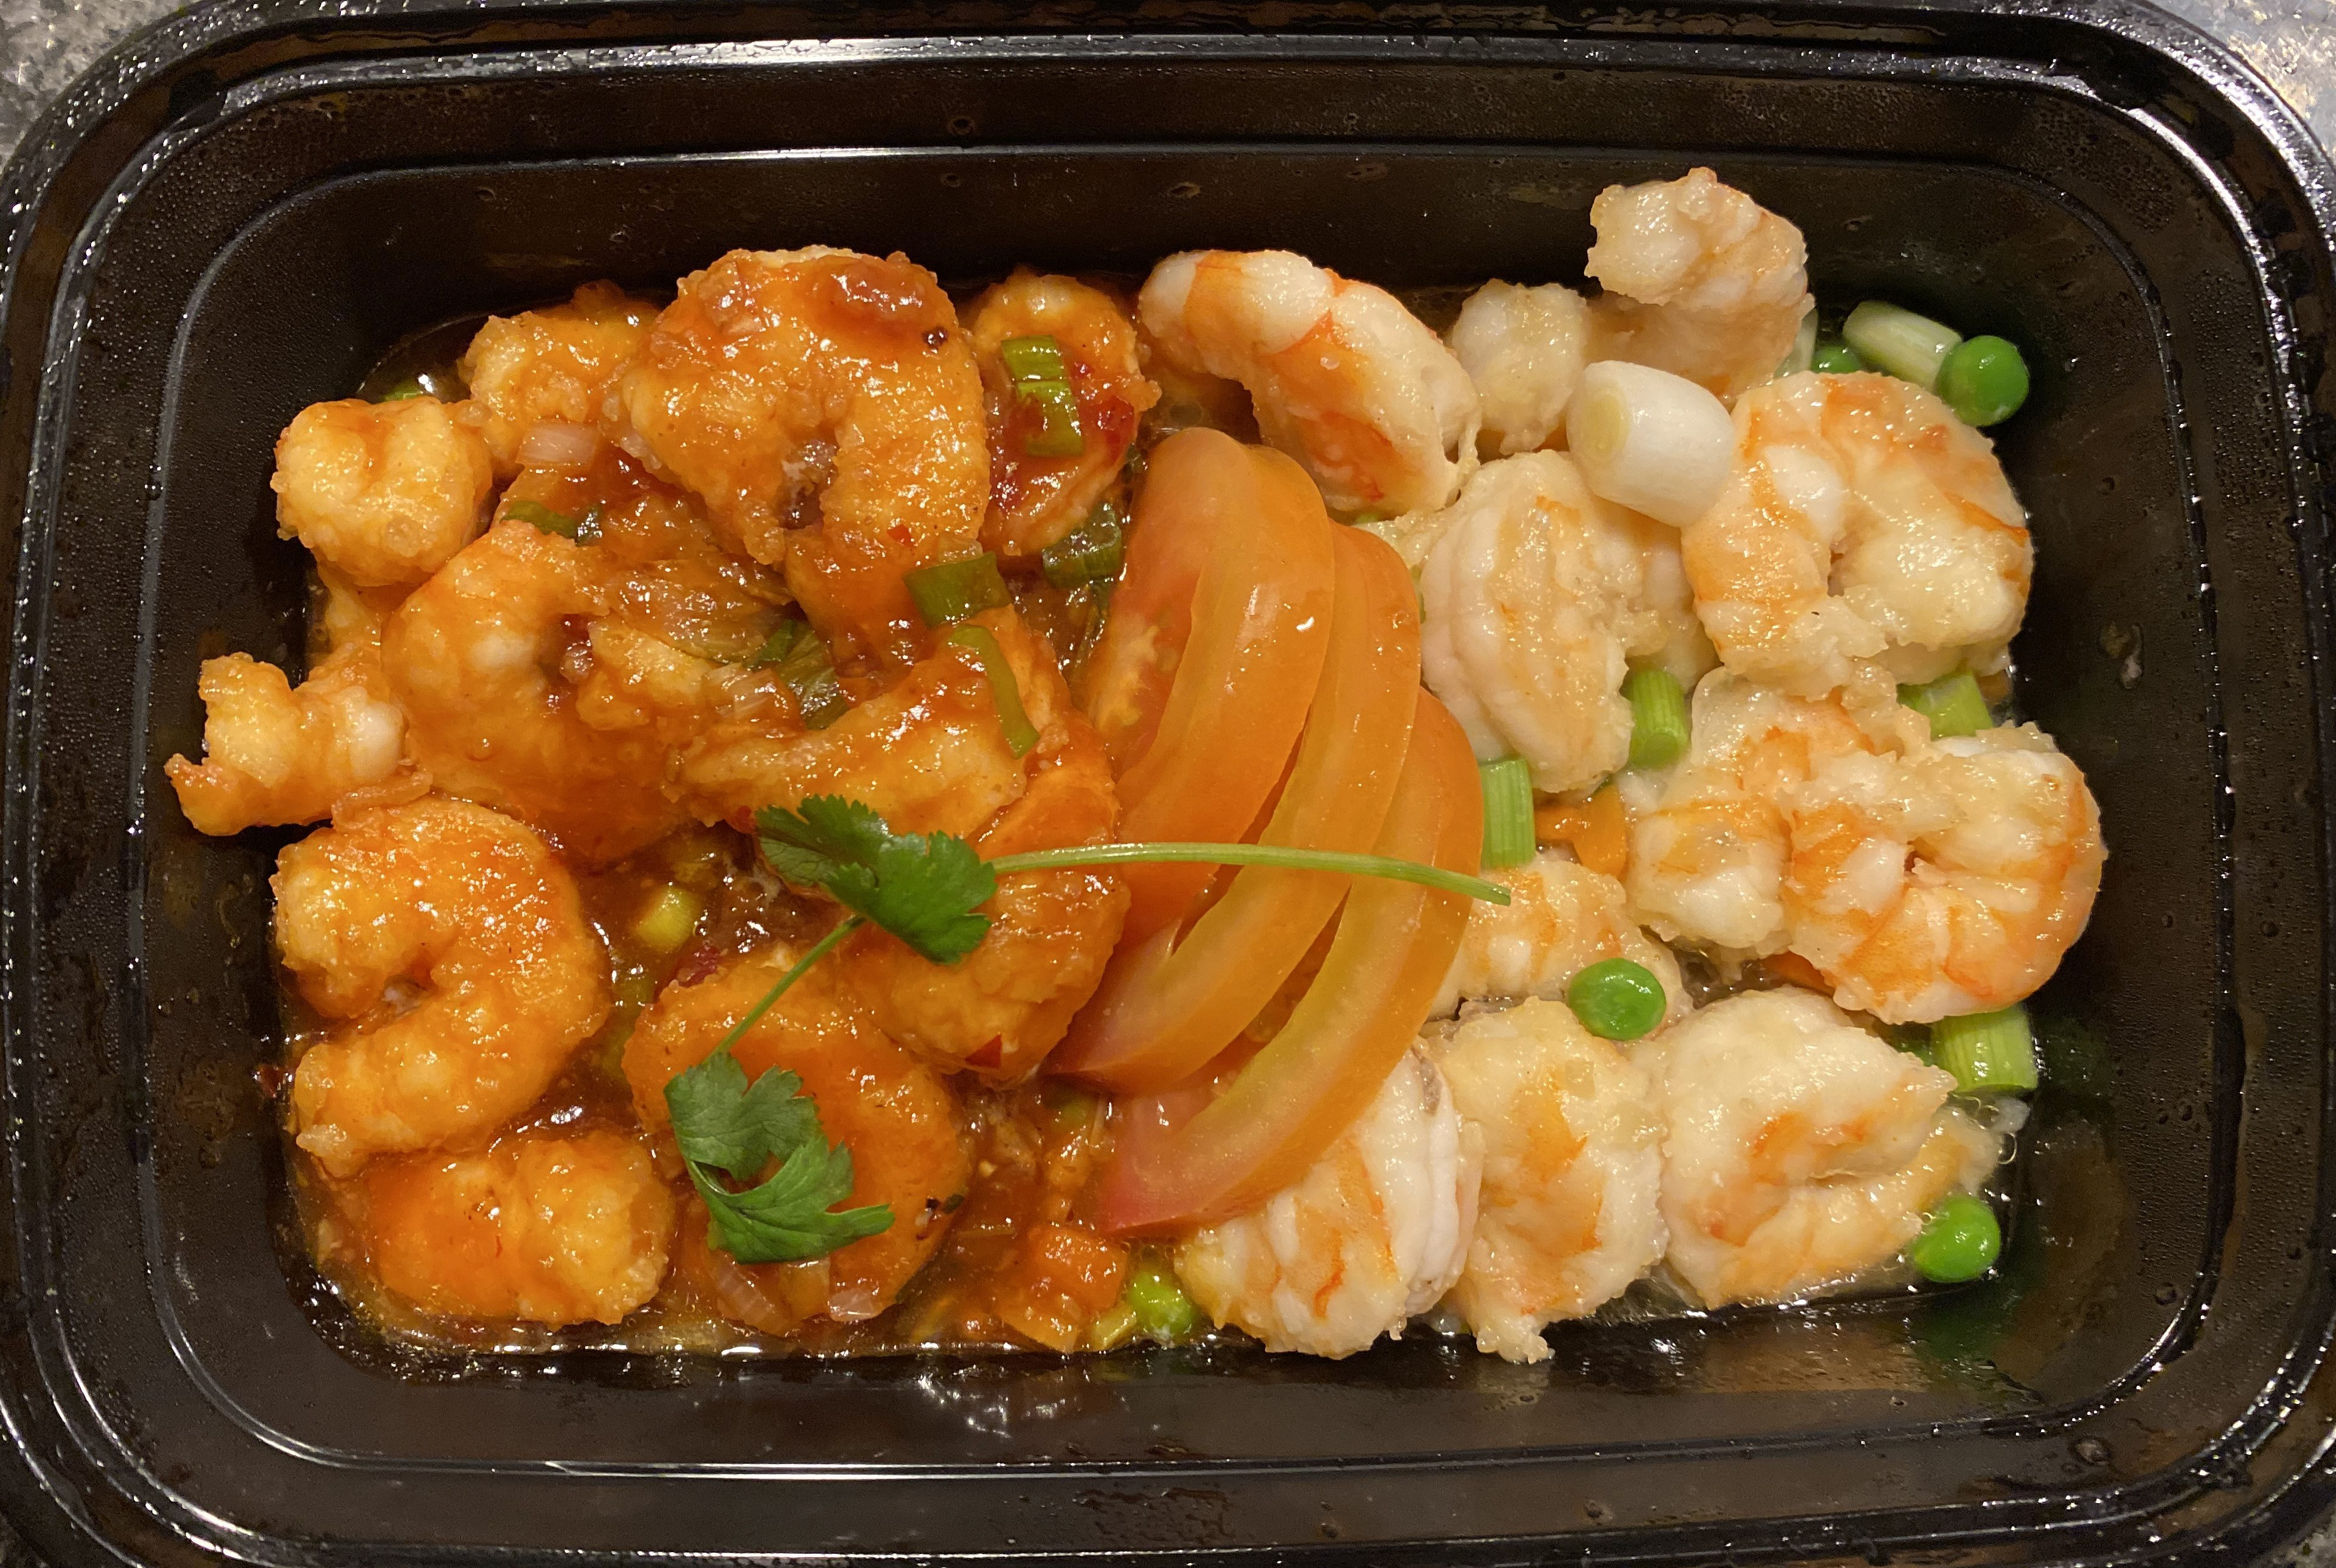 Chinese Take-Out from Chef Chu'sLover's Prawns: prawns two ways, sweet & spicy.